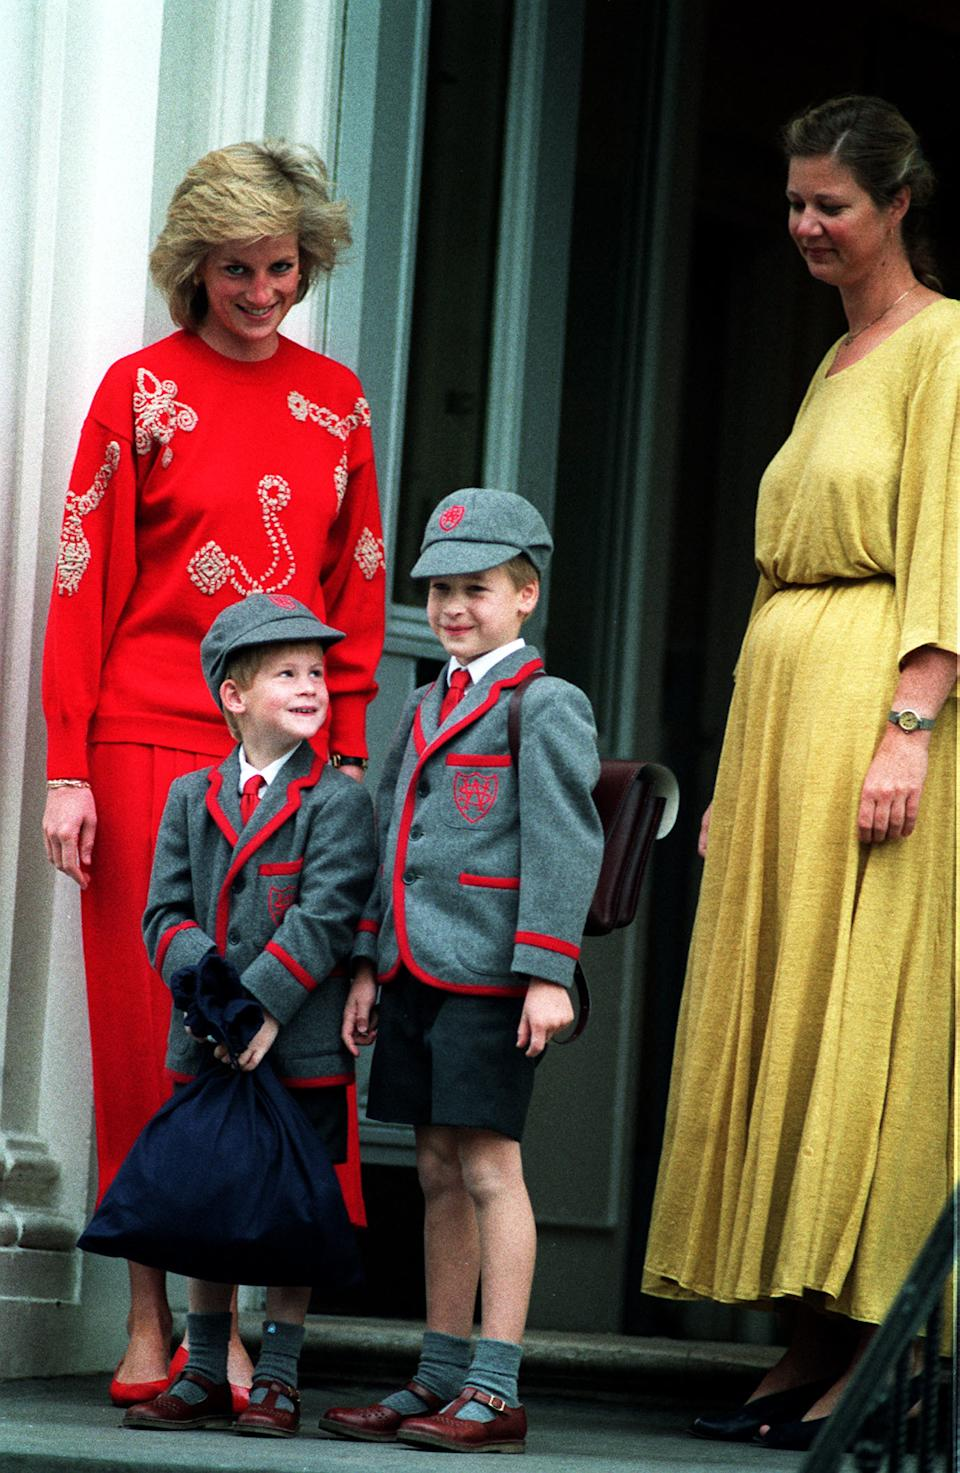 Prince Harry joins his brother Prince William at Wetherby School, accompanied by their mother Princess Diana, in 1989. [Photo: PA]